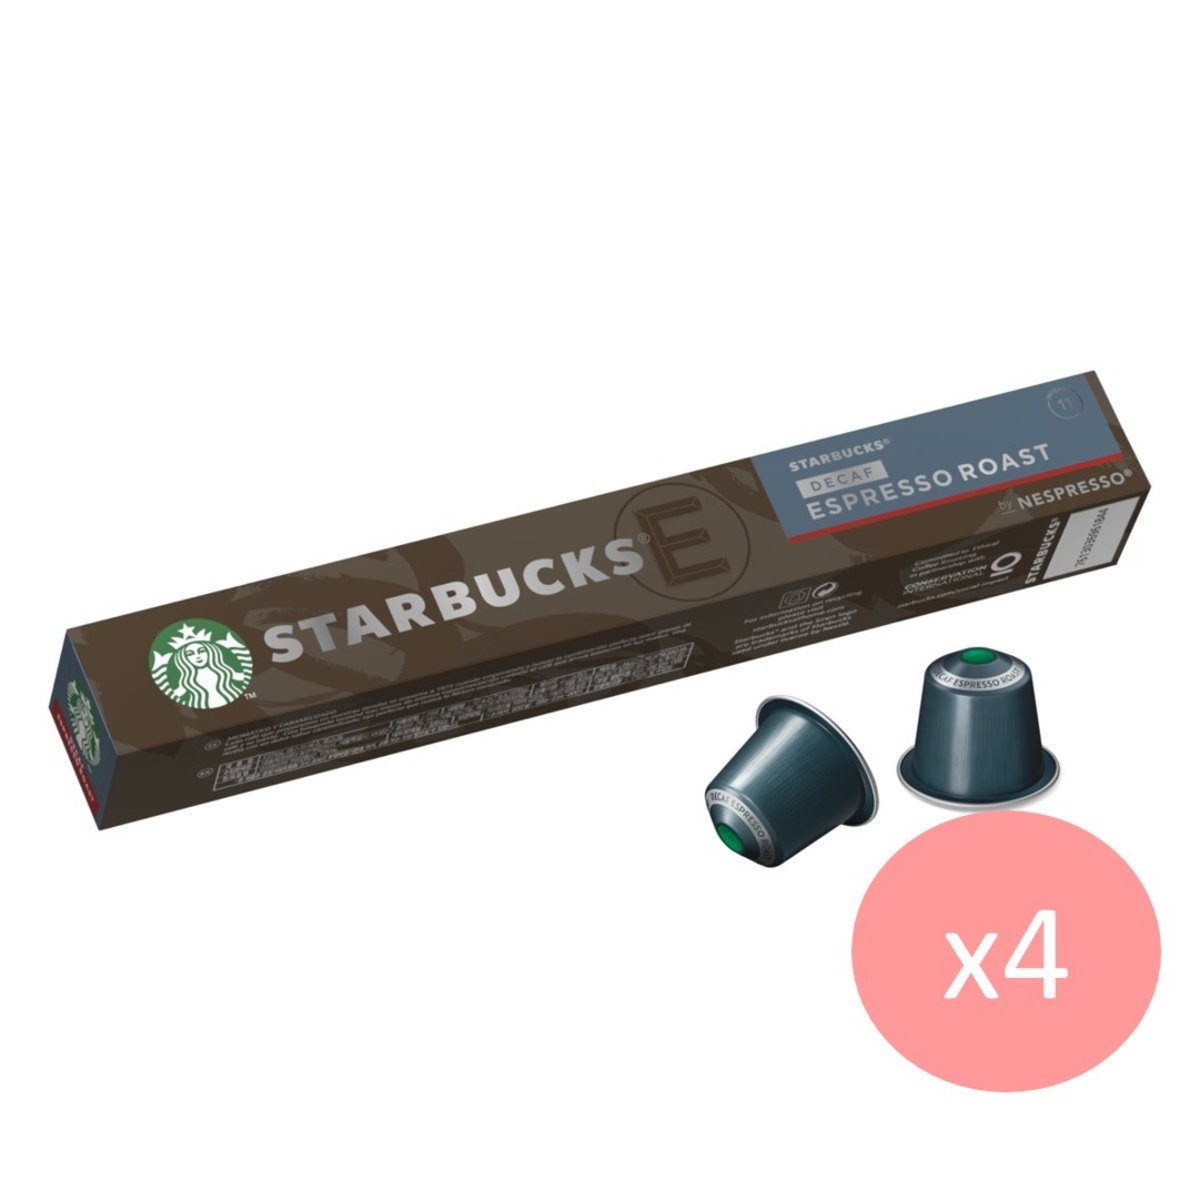 星巴克® | Starbucks by Nespresso – Decaf Espresso Roast x 4 | 香港電視 HKTVmall 網上購物